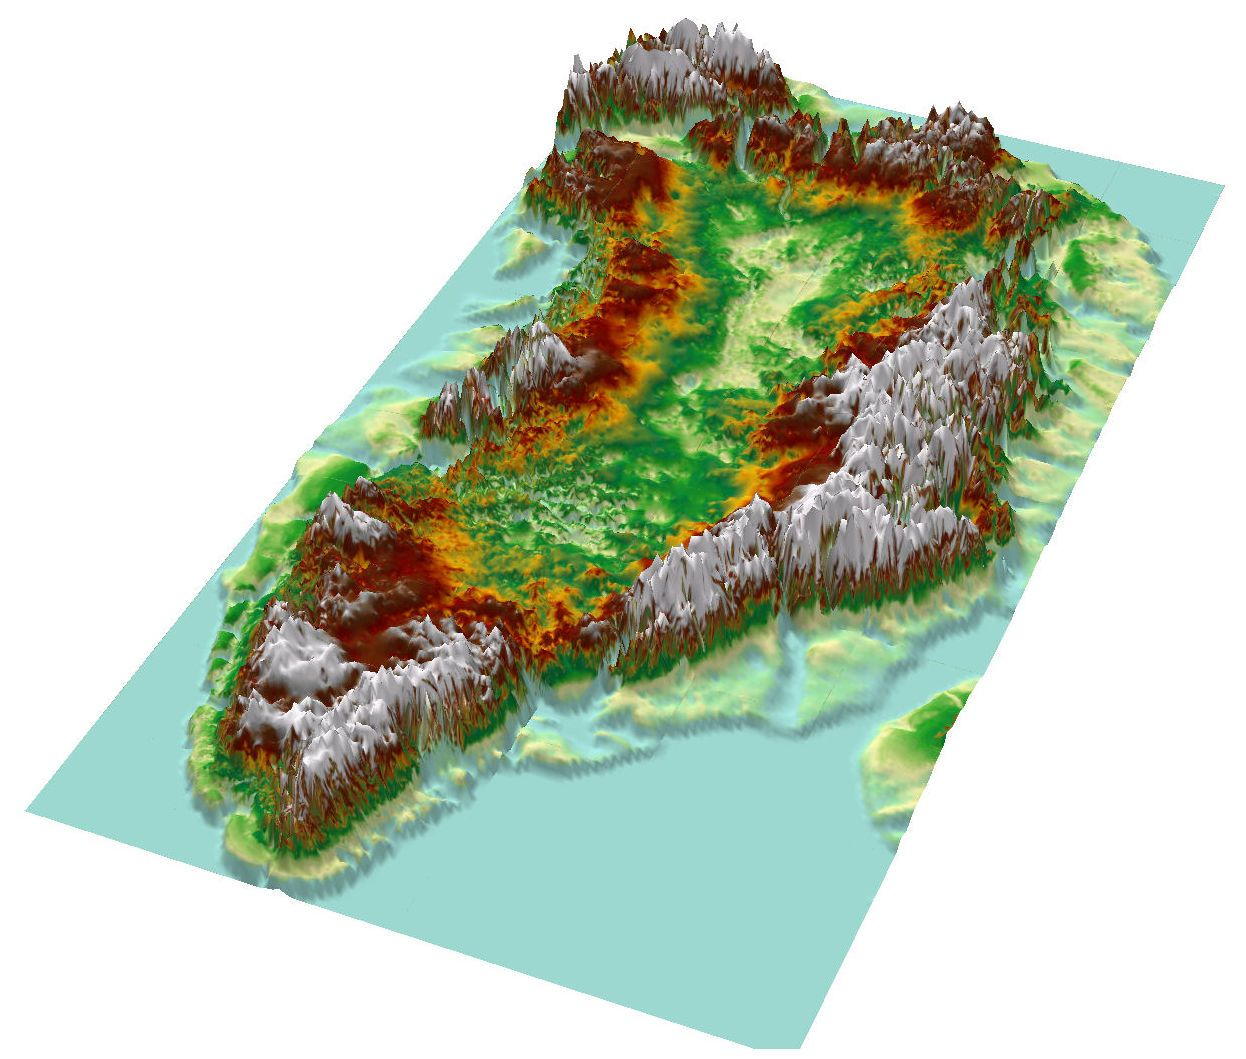 Topographic map of Greenland from bedrock elevation data ...